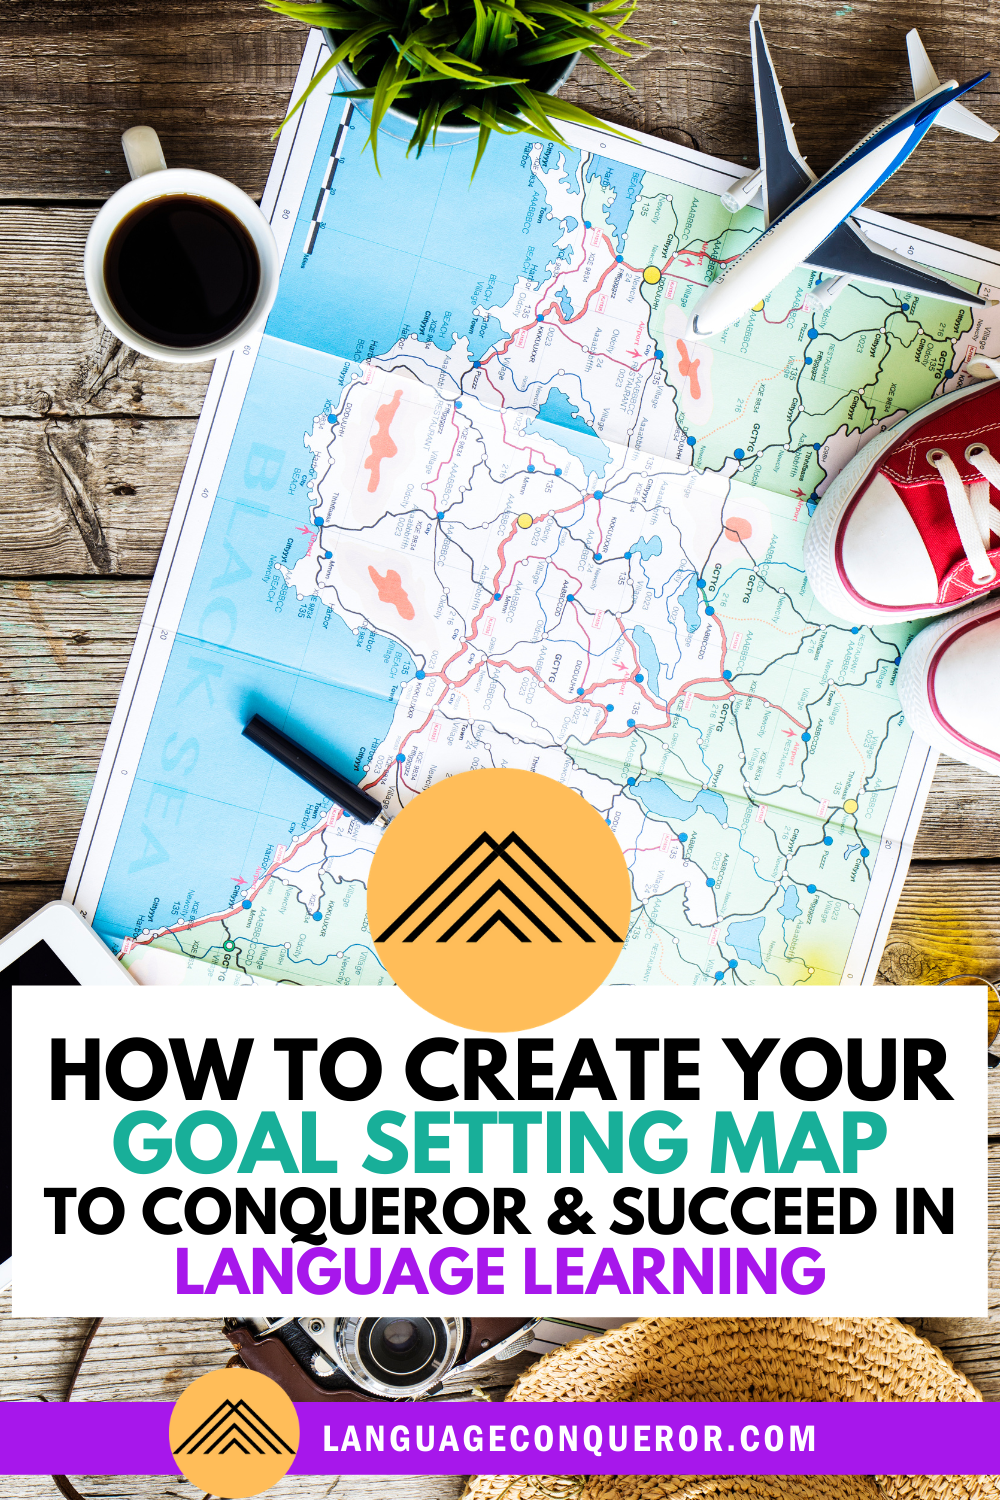 How to Create Your Goal Setting Map to Conqueror and Succeed in Language Learning